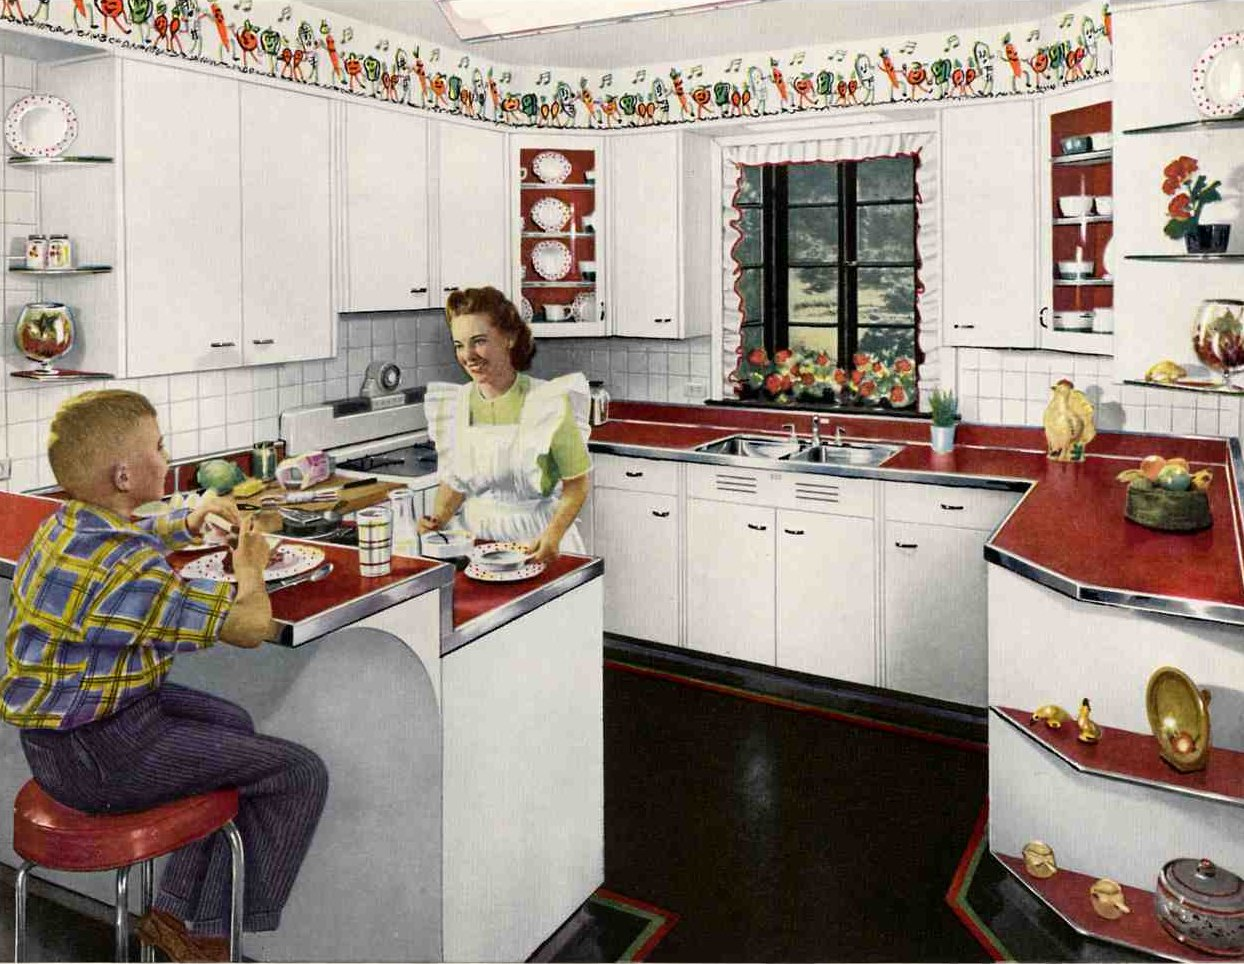 Sassy lassies vintage life i 39 m dreaming of a 40 39 s kitchen for Vintage kitchen designs photos